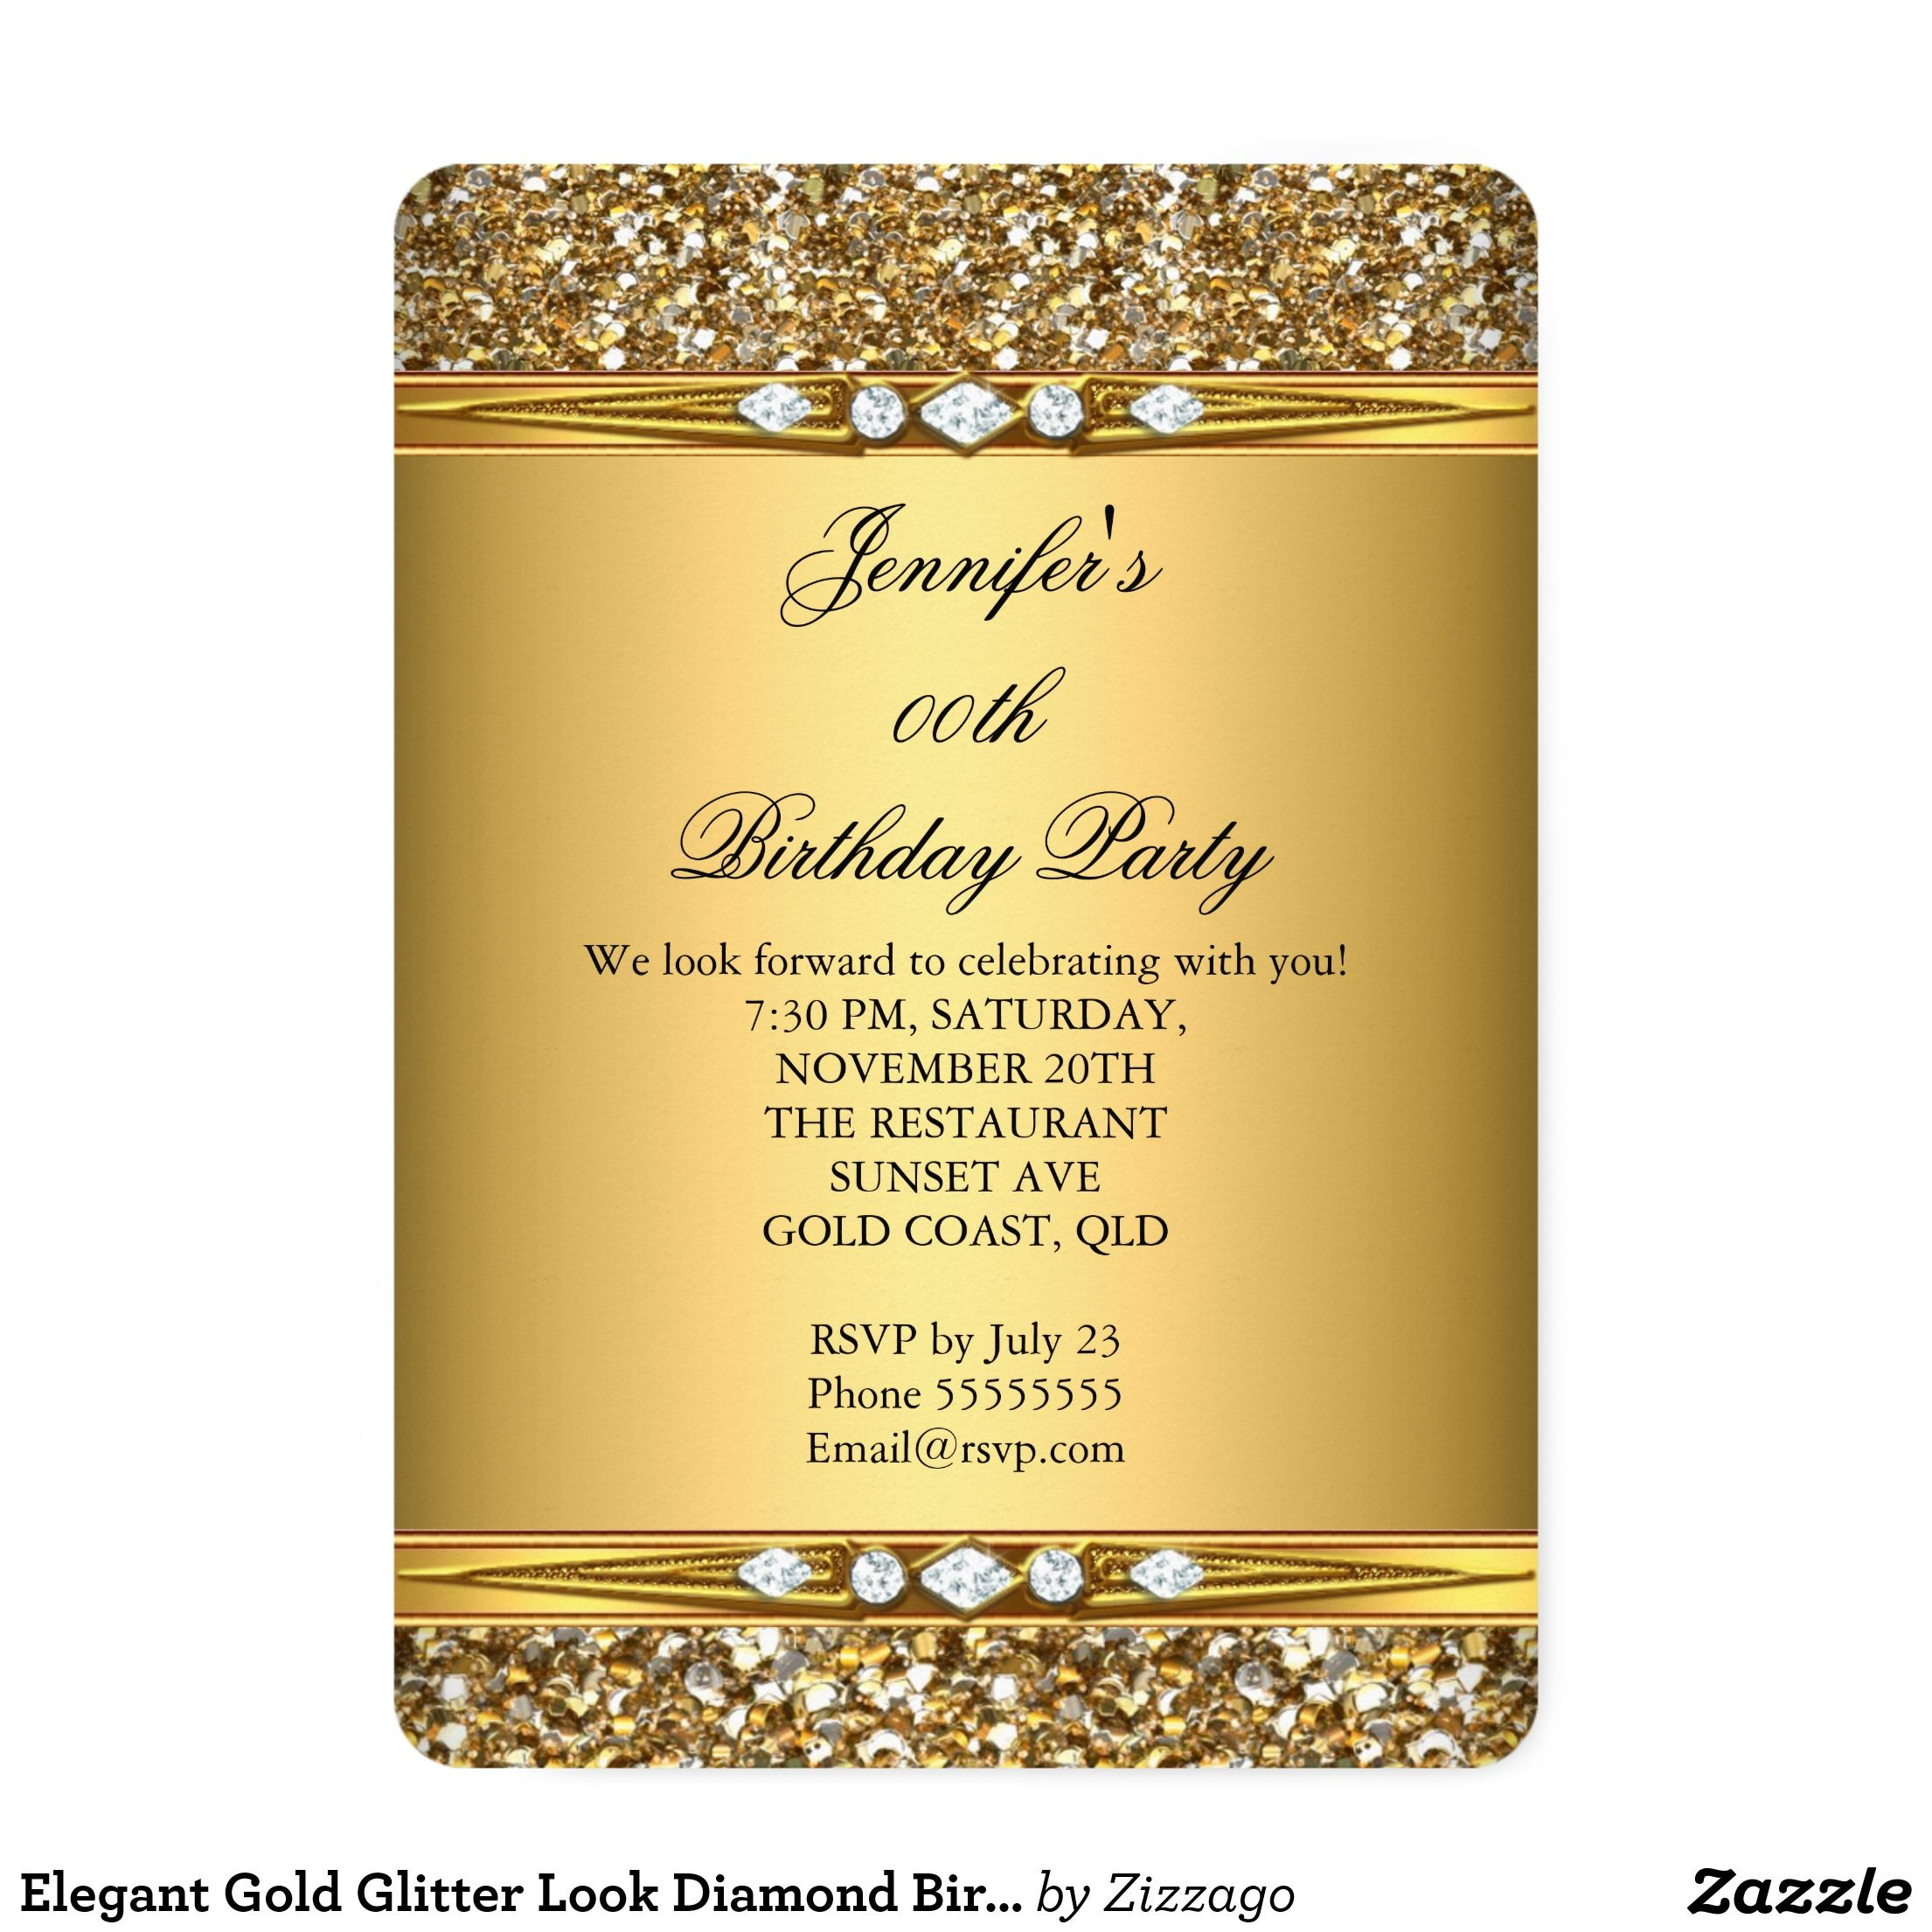 Elegant Gold Glitter Look Diamond Birthday Party Card Birthday - Birthday invitation gold coast